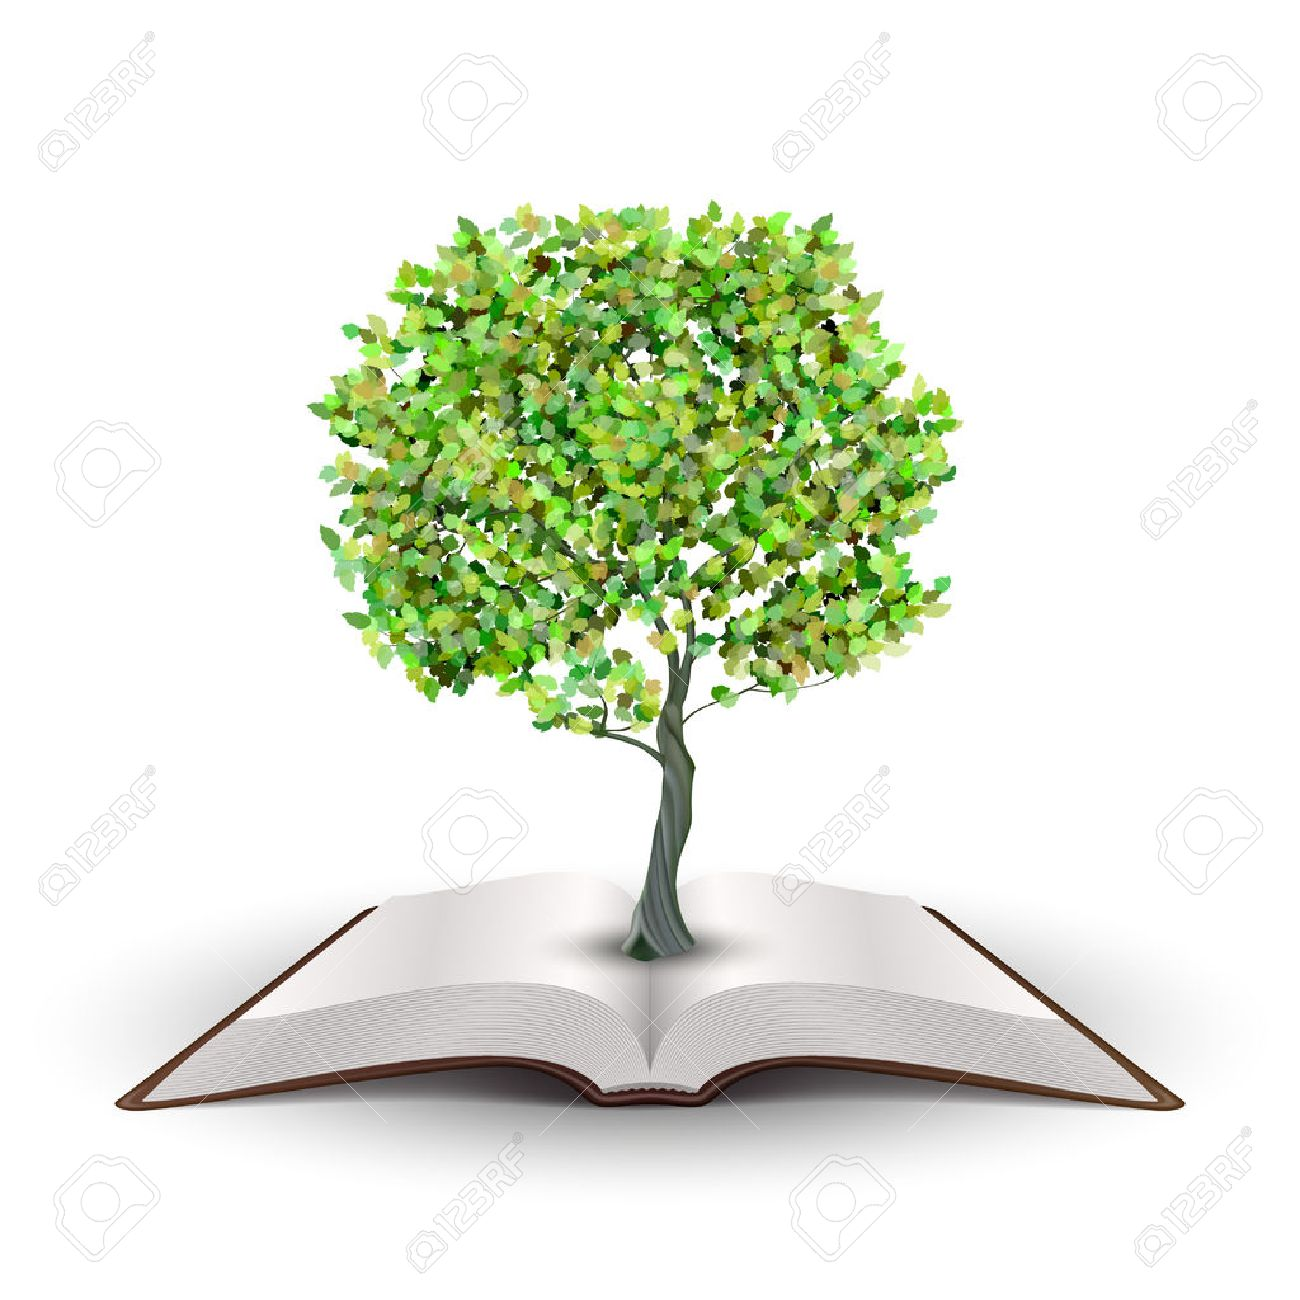 Tree growing from open book Vector isolated on white Stock Vector - 22787305